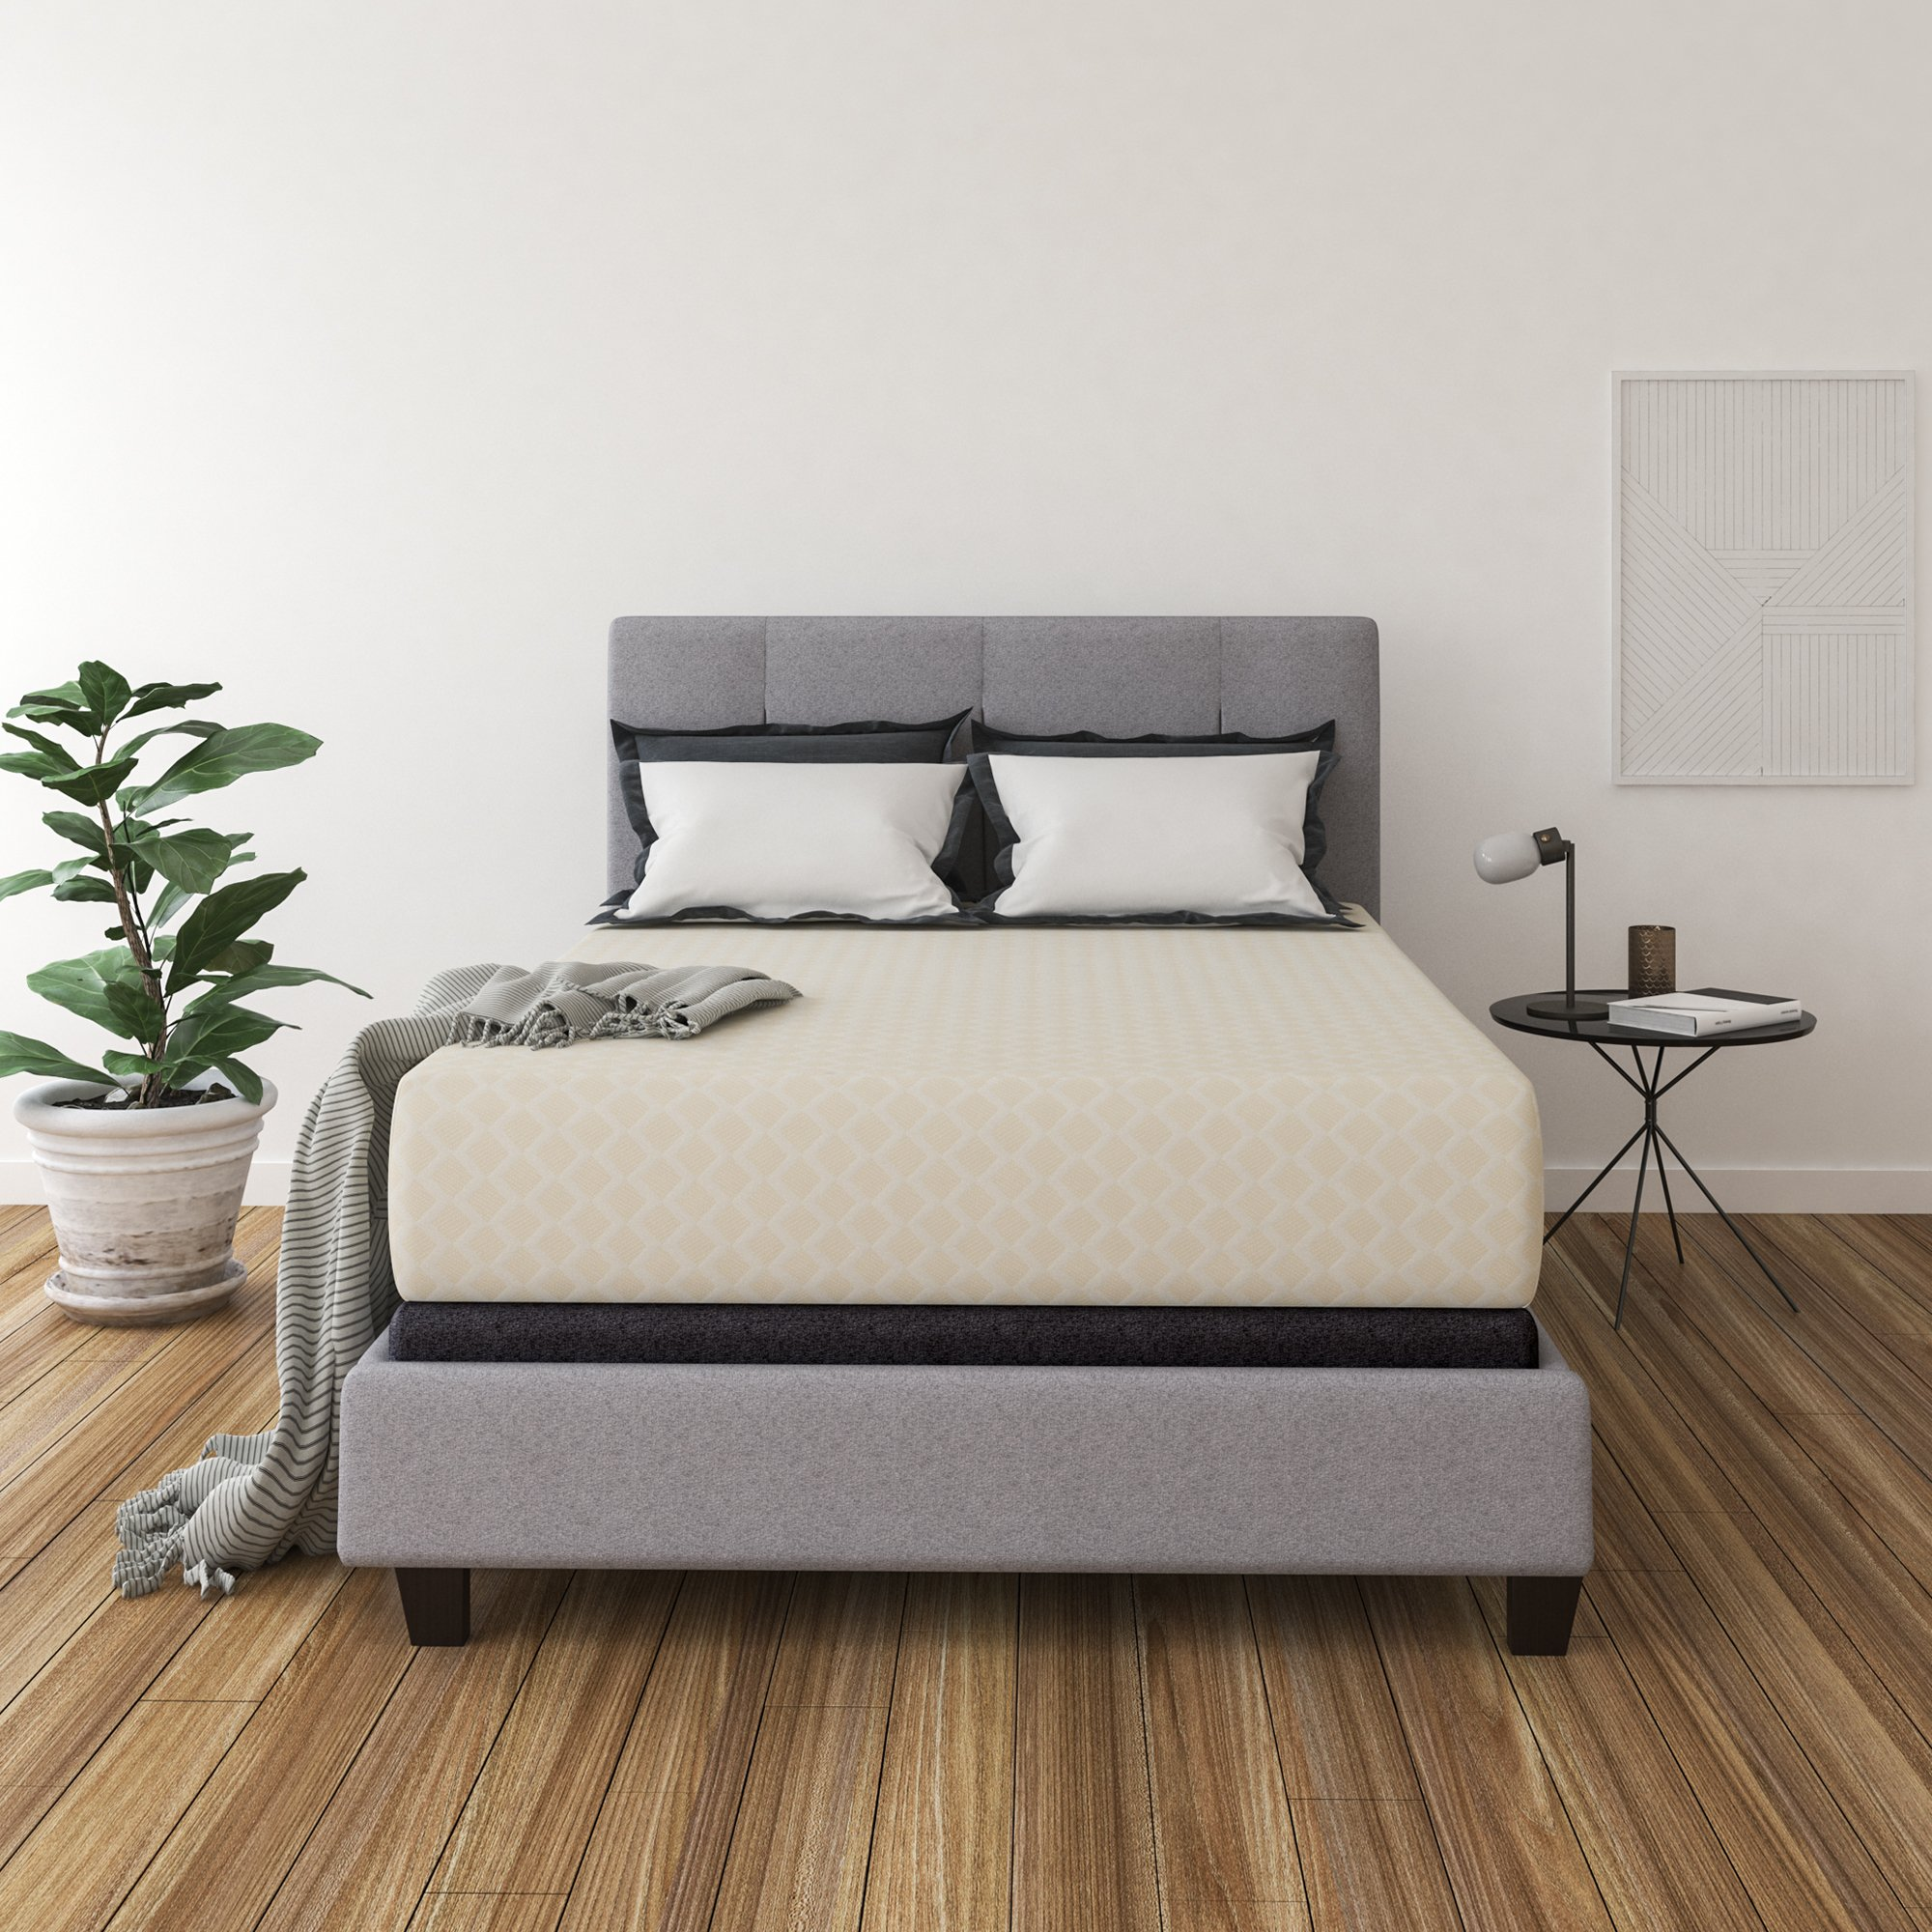 Best Rated In Furniture & Helpful Customer Reviews